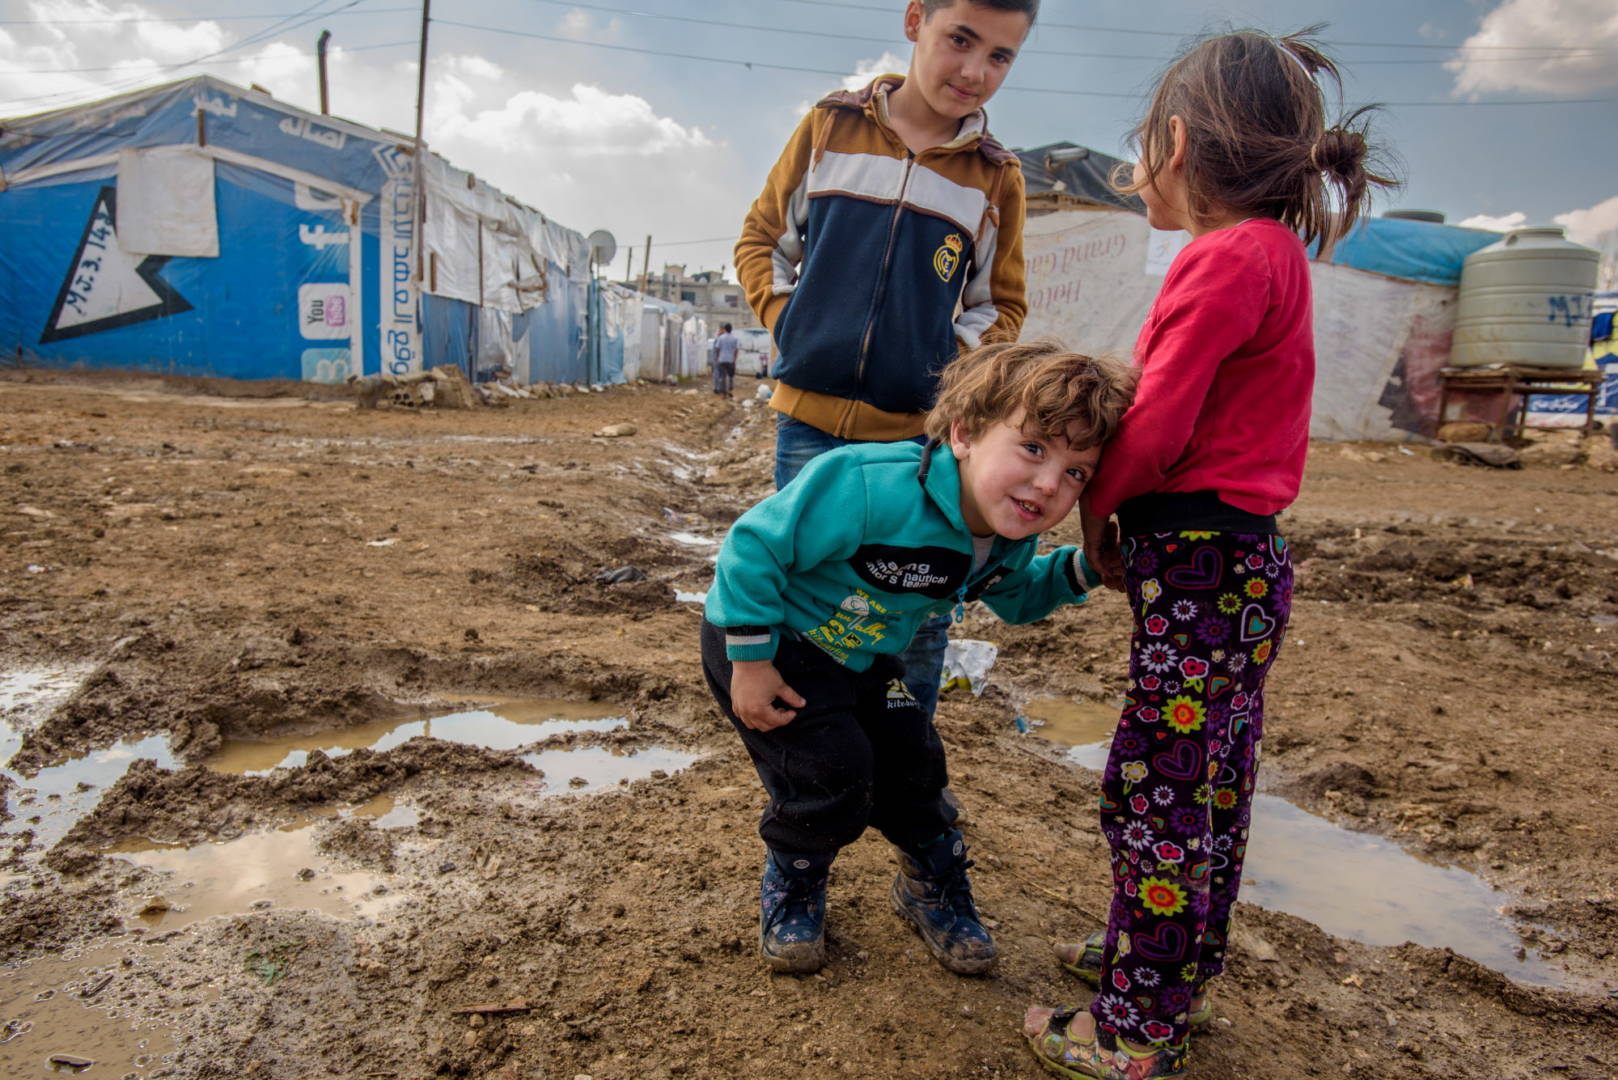 Help Syrian refugees like shy and fearful Mohamed, 2, who seldom ventures from his family's tent without holding tightly to his cousin Malak's hand. Both his parents died in Syria.